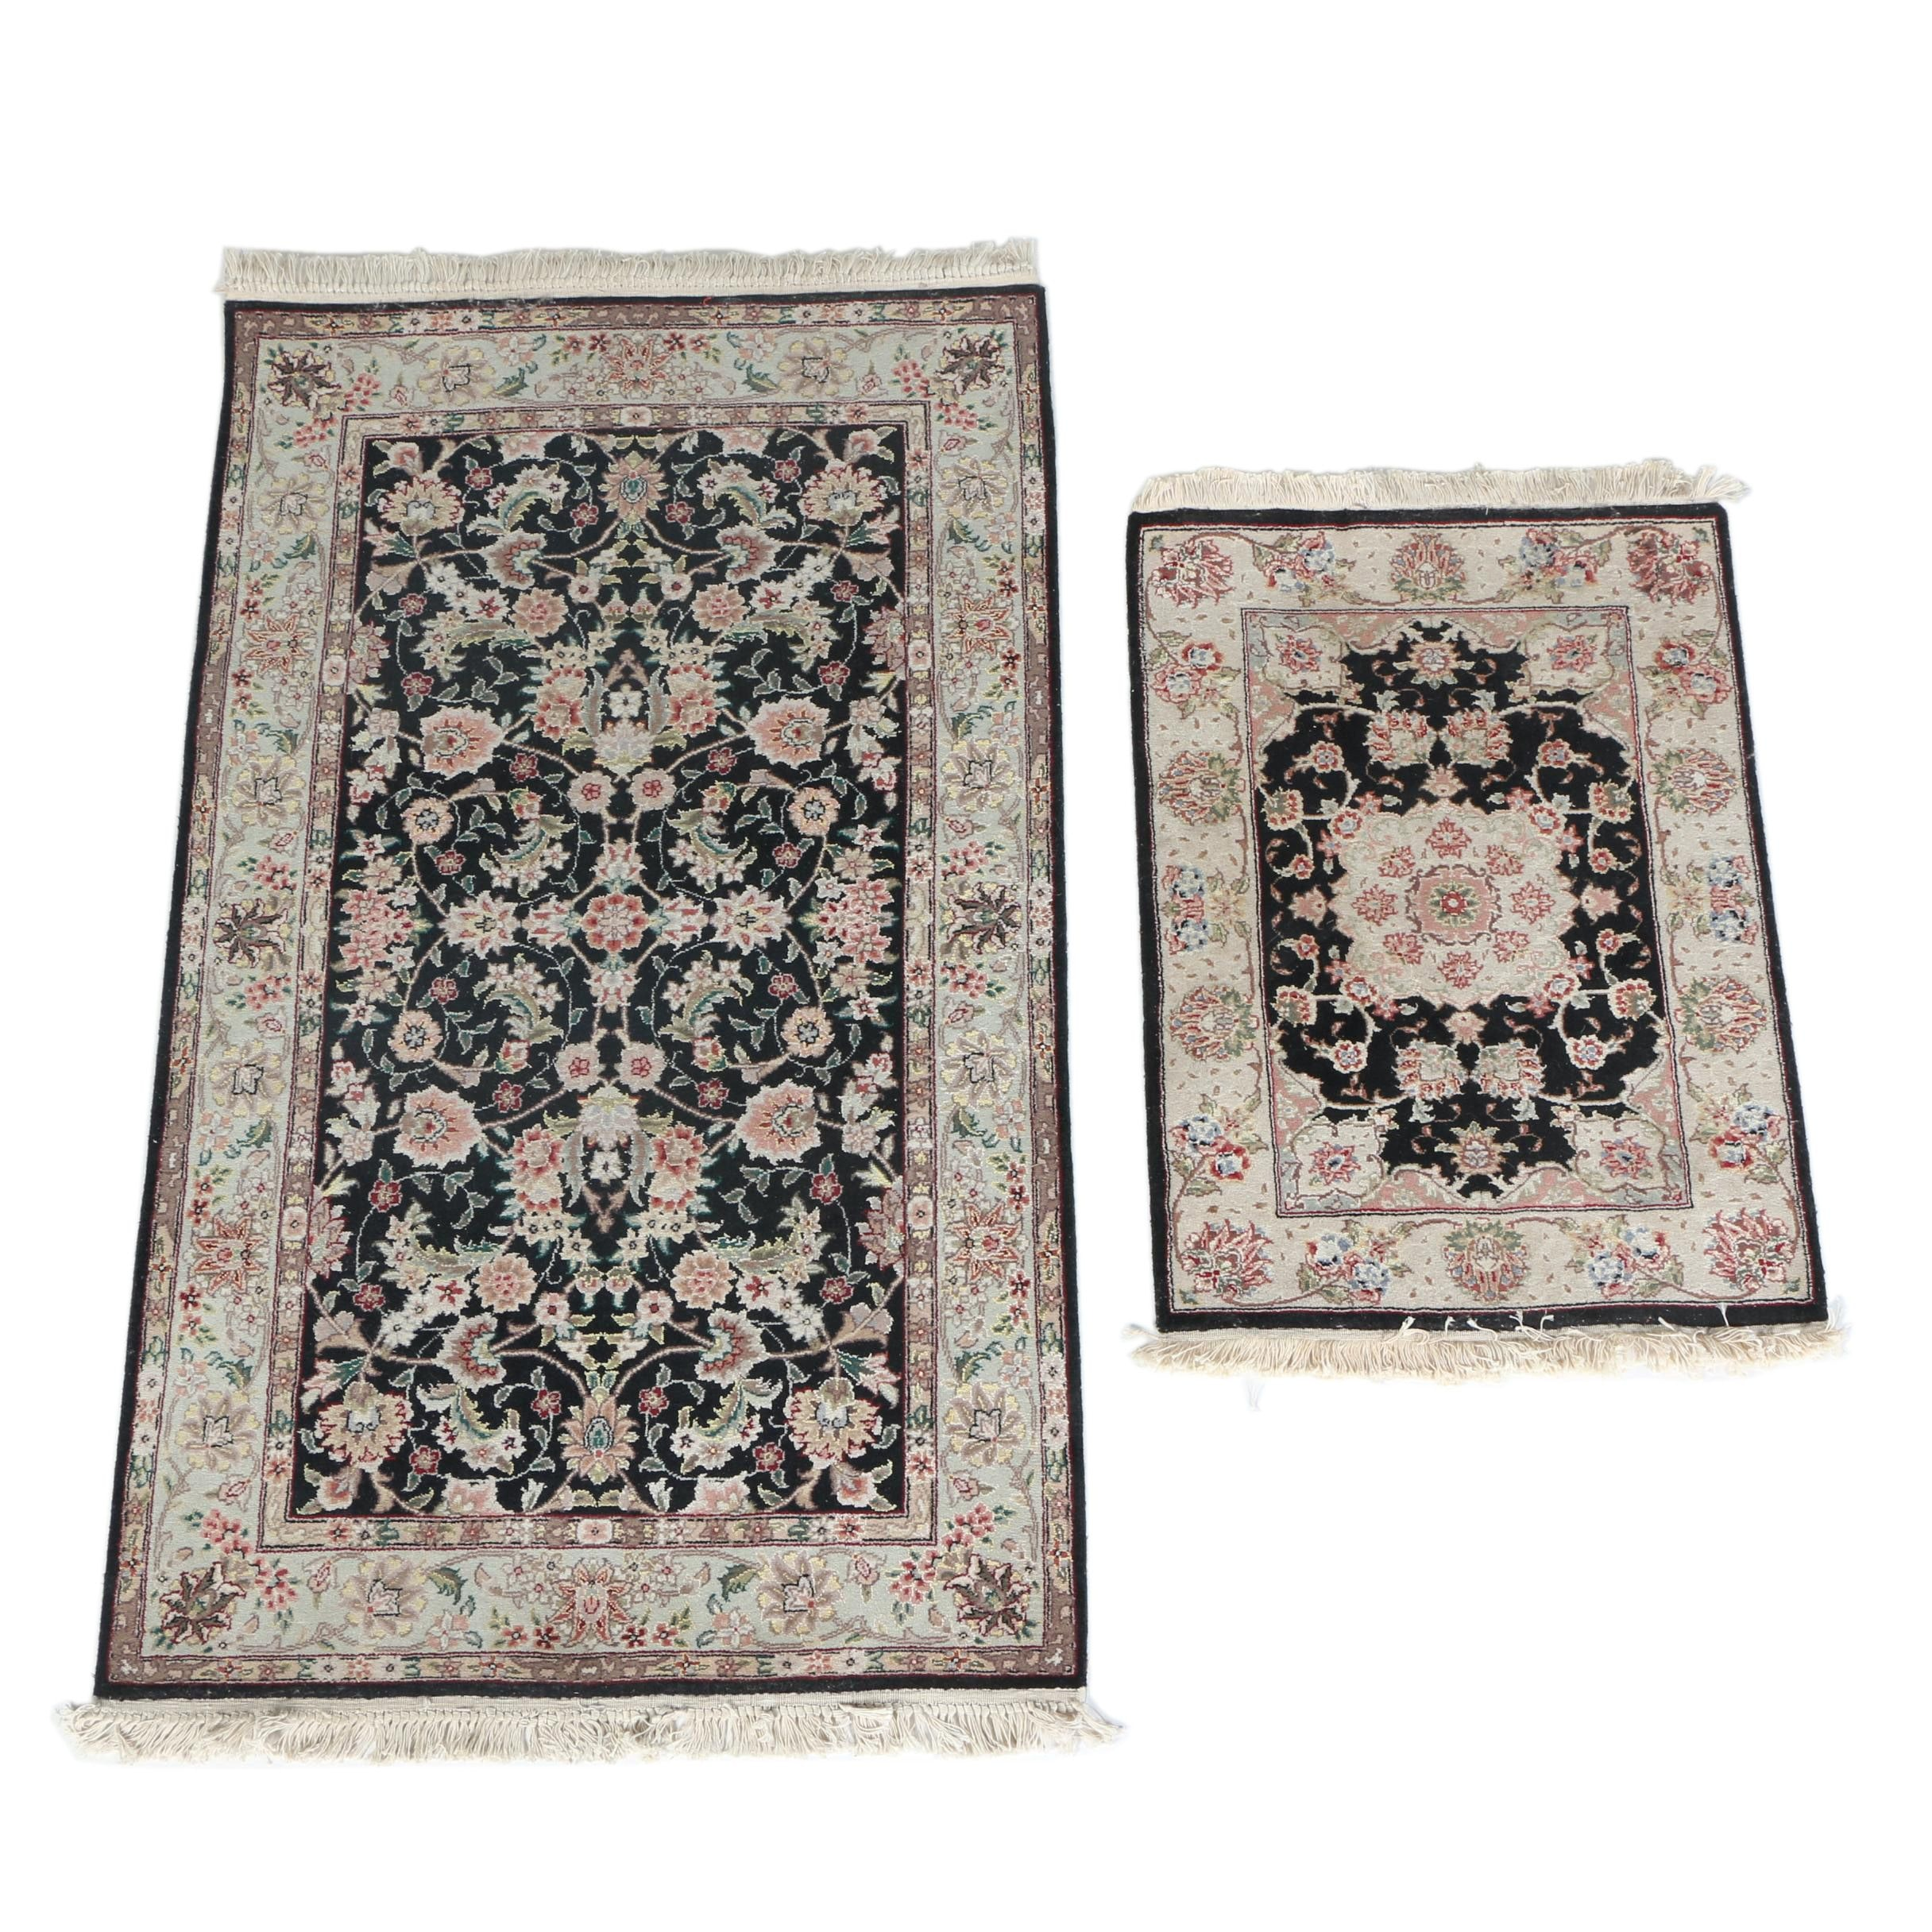 Finely Hand-Knotted Sino-Persian Wool and Silk Accent Rugs